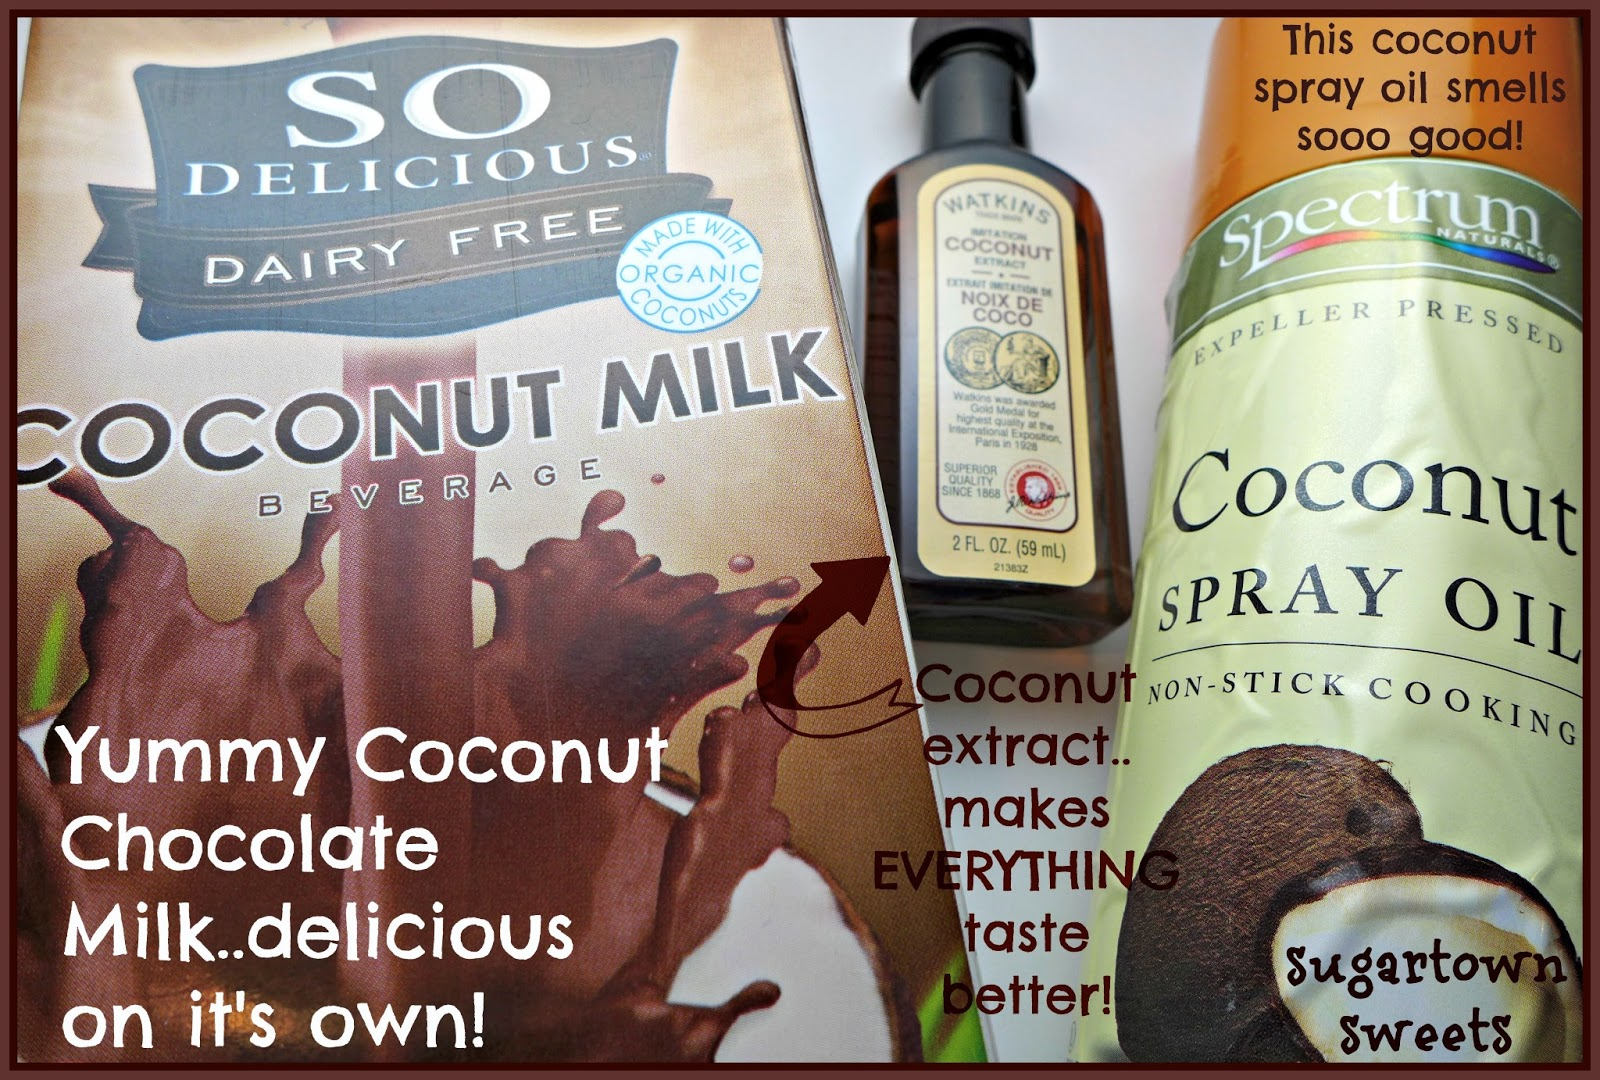 Sugartown Sweets: Chocolate Covered Coconut Chocolate Milk ...